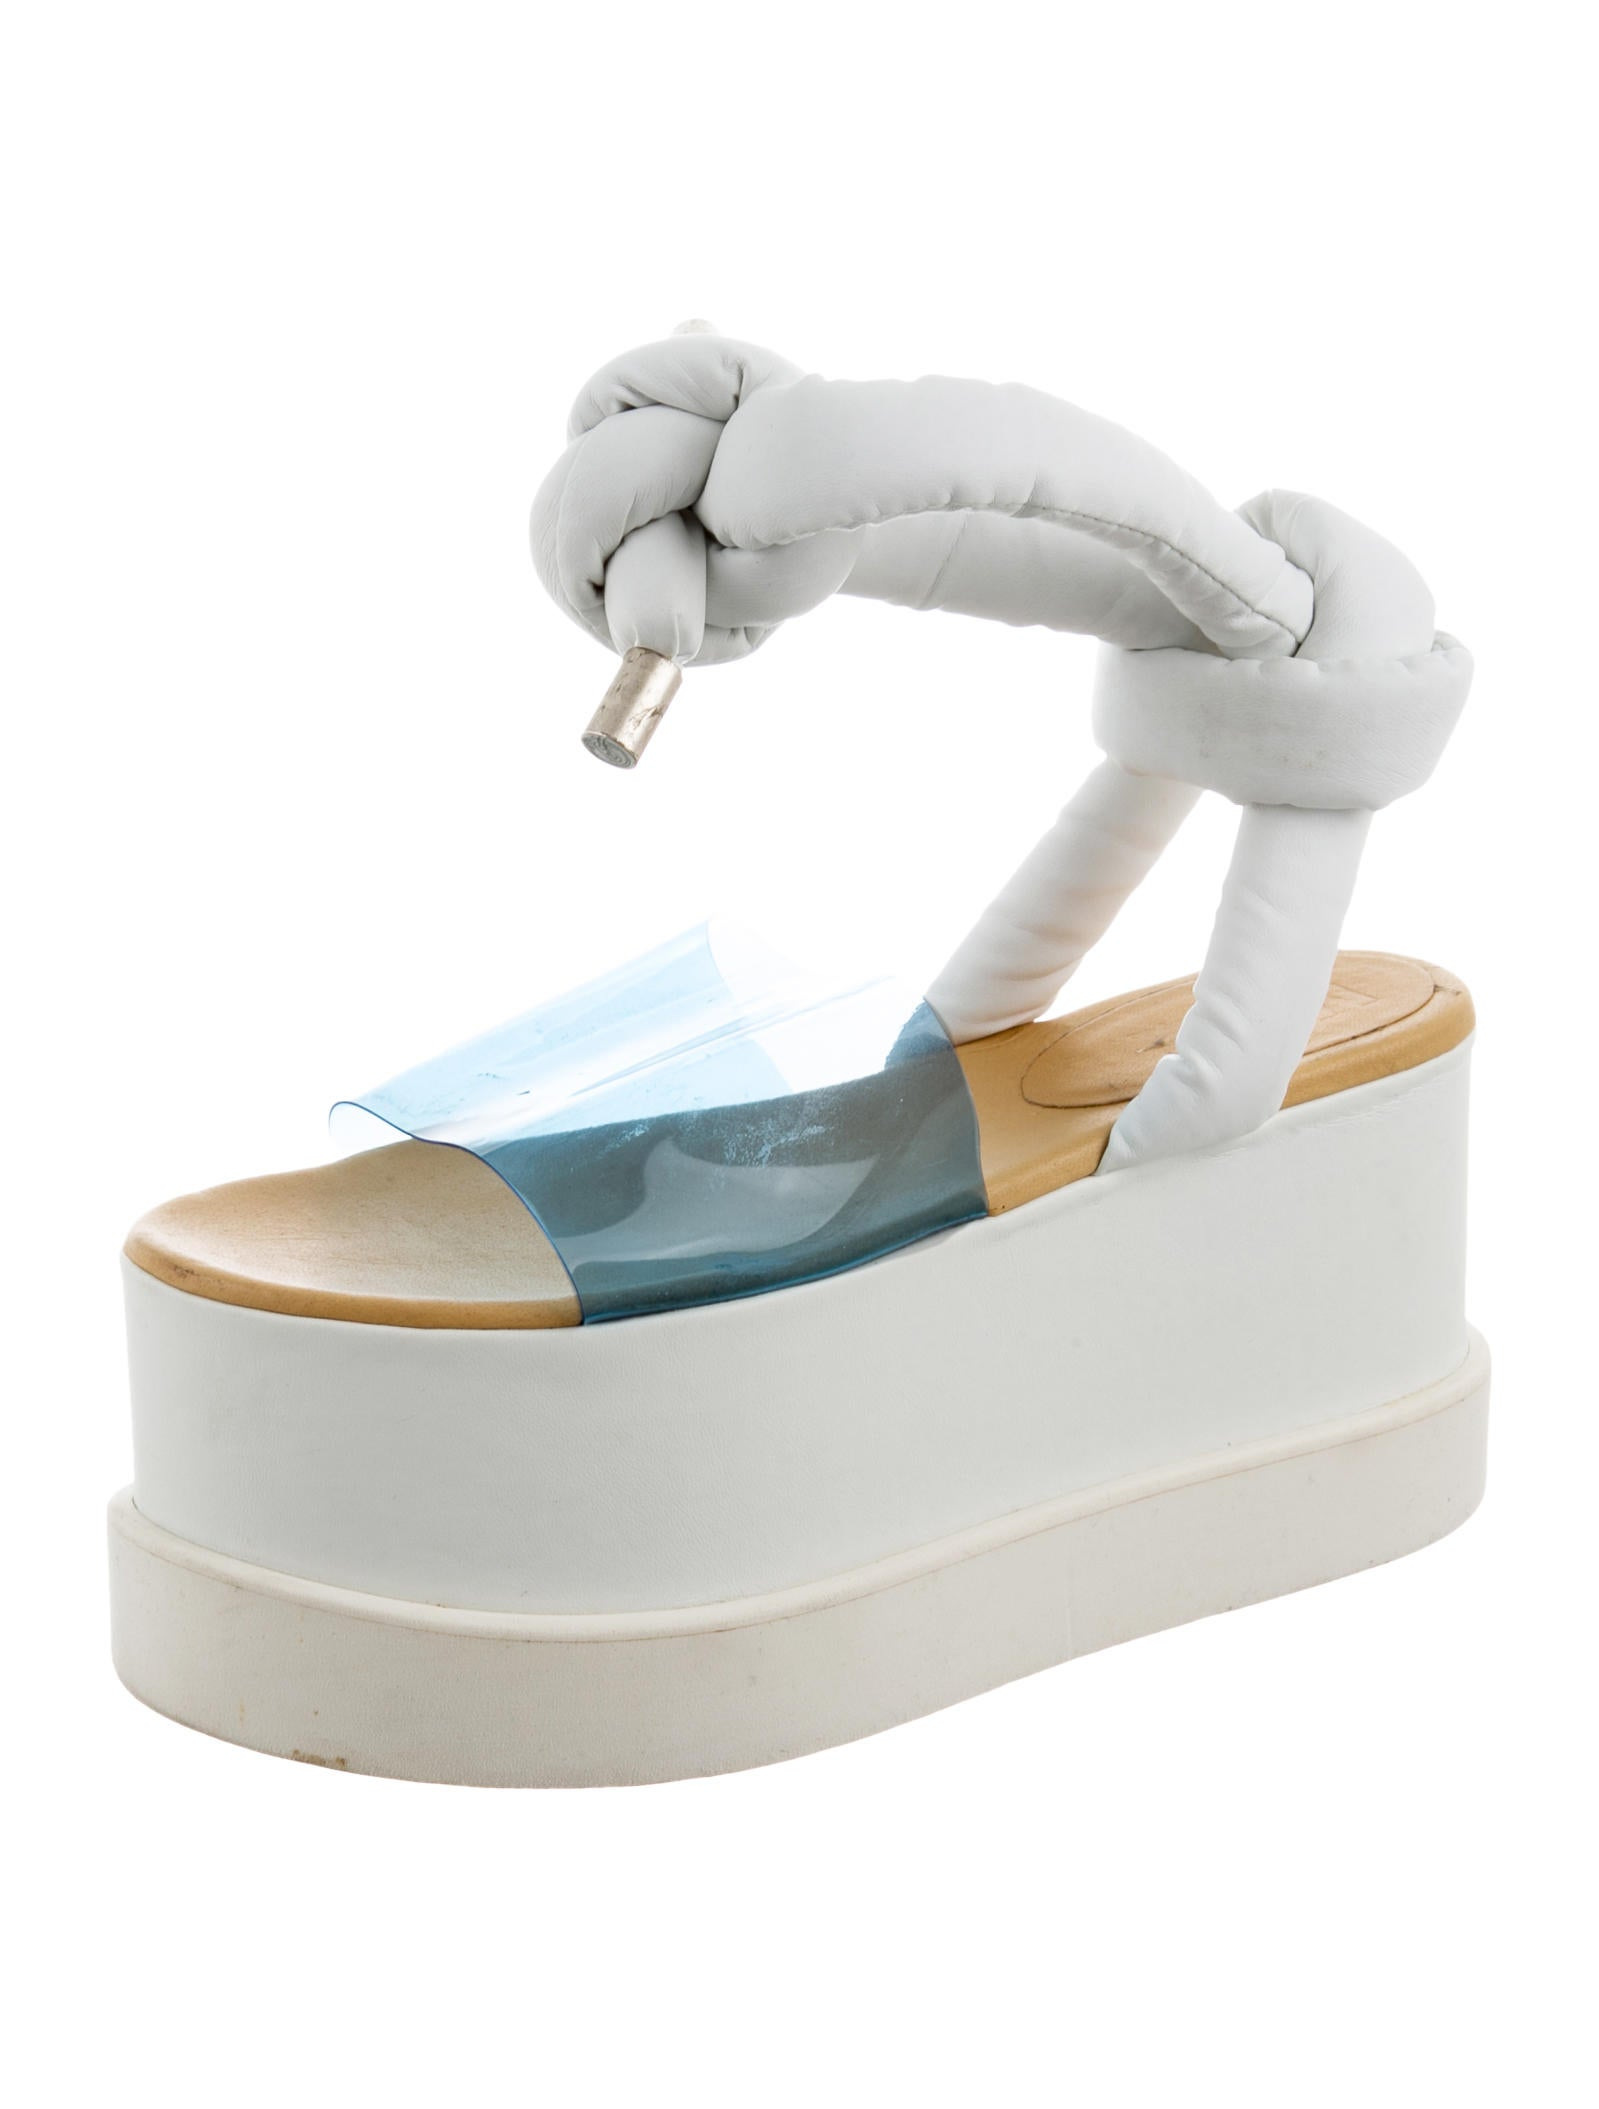 MM6 Maison Margiela MM6 by Maison Martin Margiela PVC Wedge Sandals outlet 2014 new collections cheap online choice online pLUOwMKe